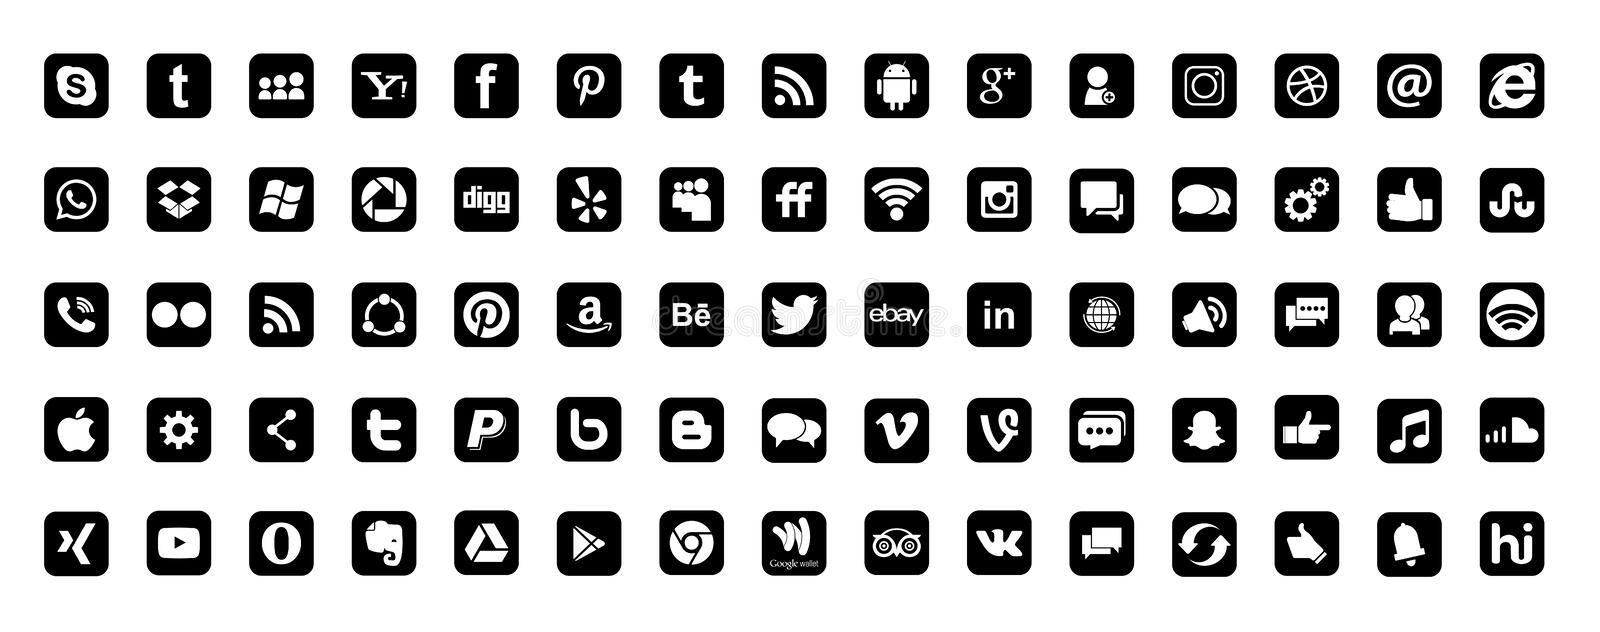 Set of most popular social media logos icons black Instagram Facebook Twitter Youtube WhatsApp LinkedIn Pinterest Blogd on white royalty free illustration